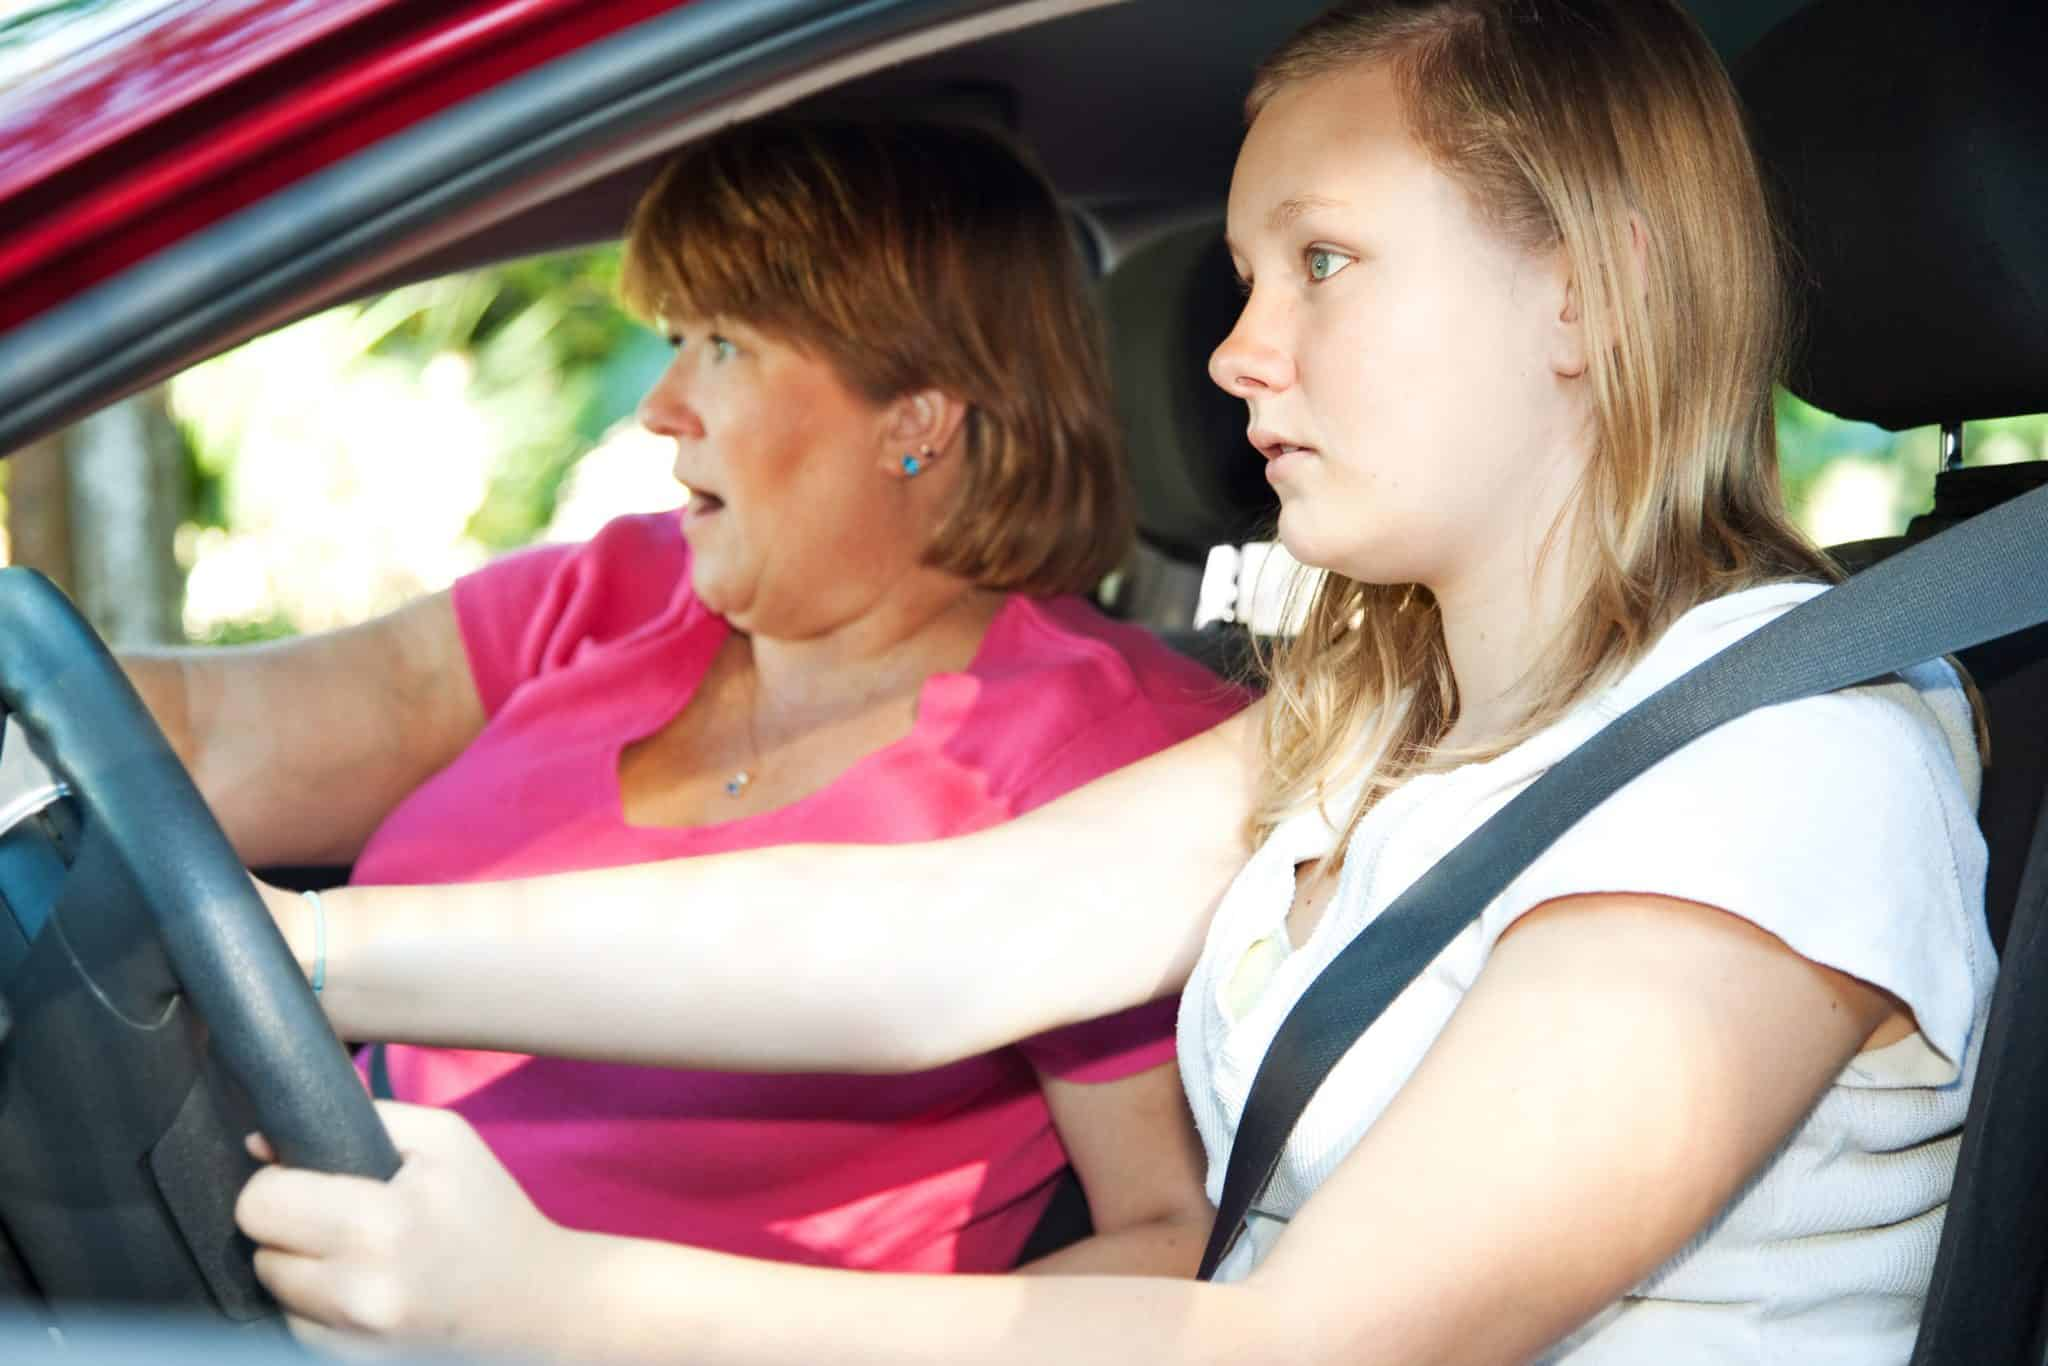 Teenage driver and her mother right before getting in a car accident.